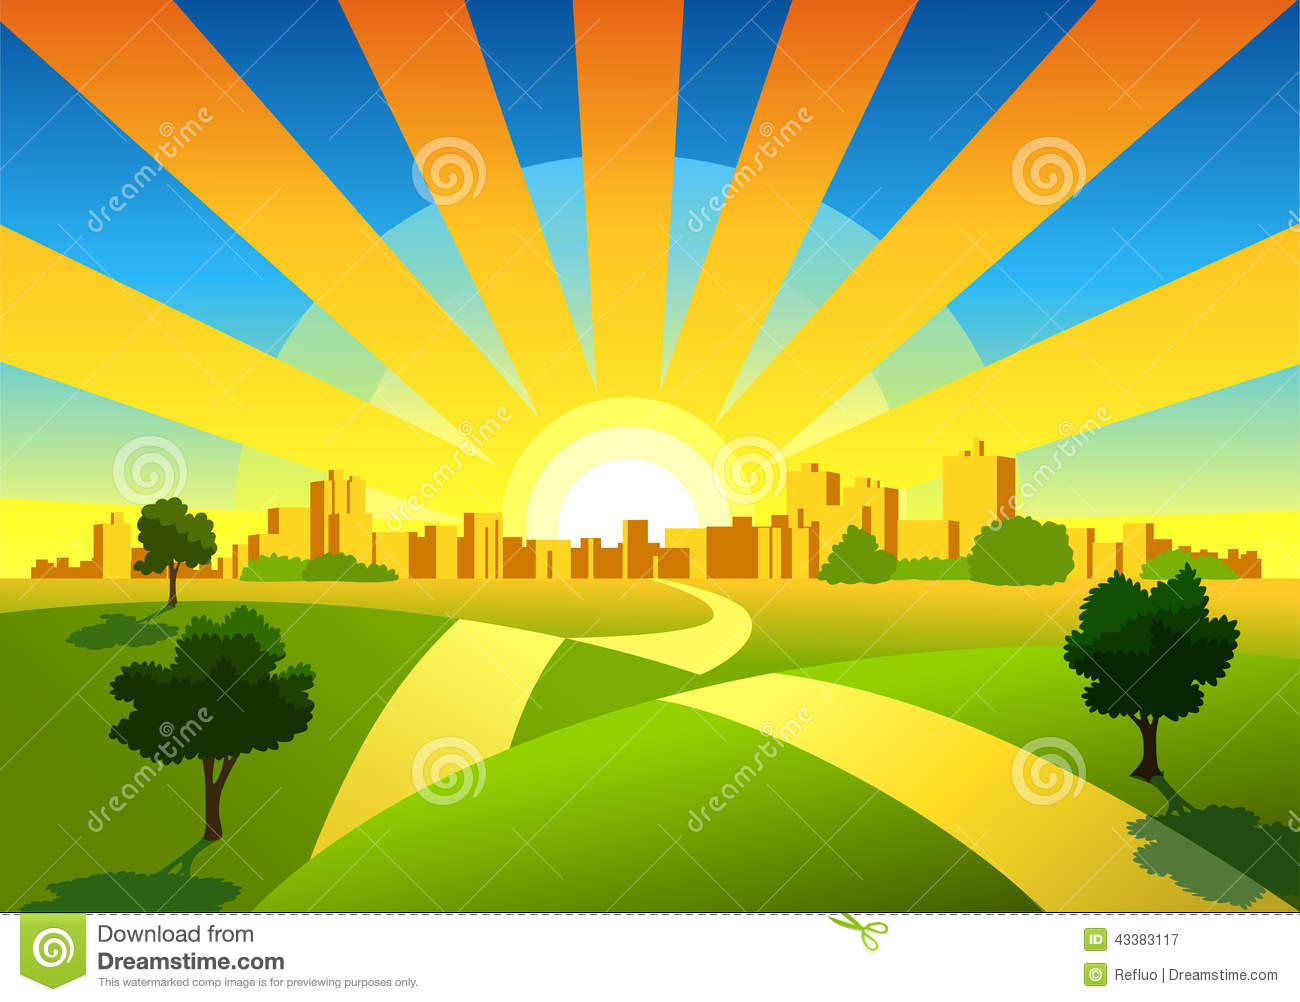 Morning City Background Stock Vector - Image: 43383117